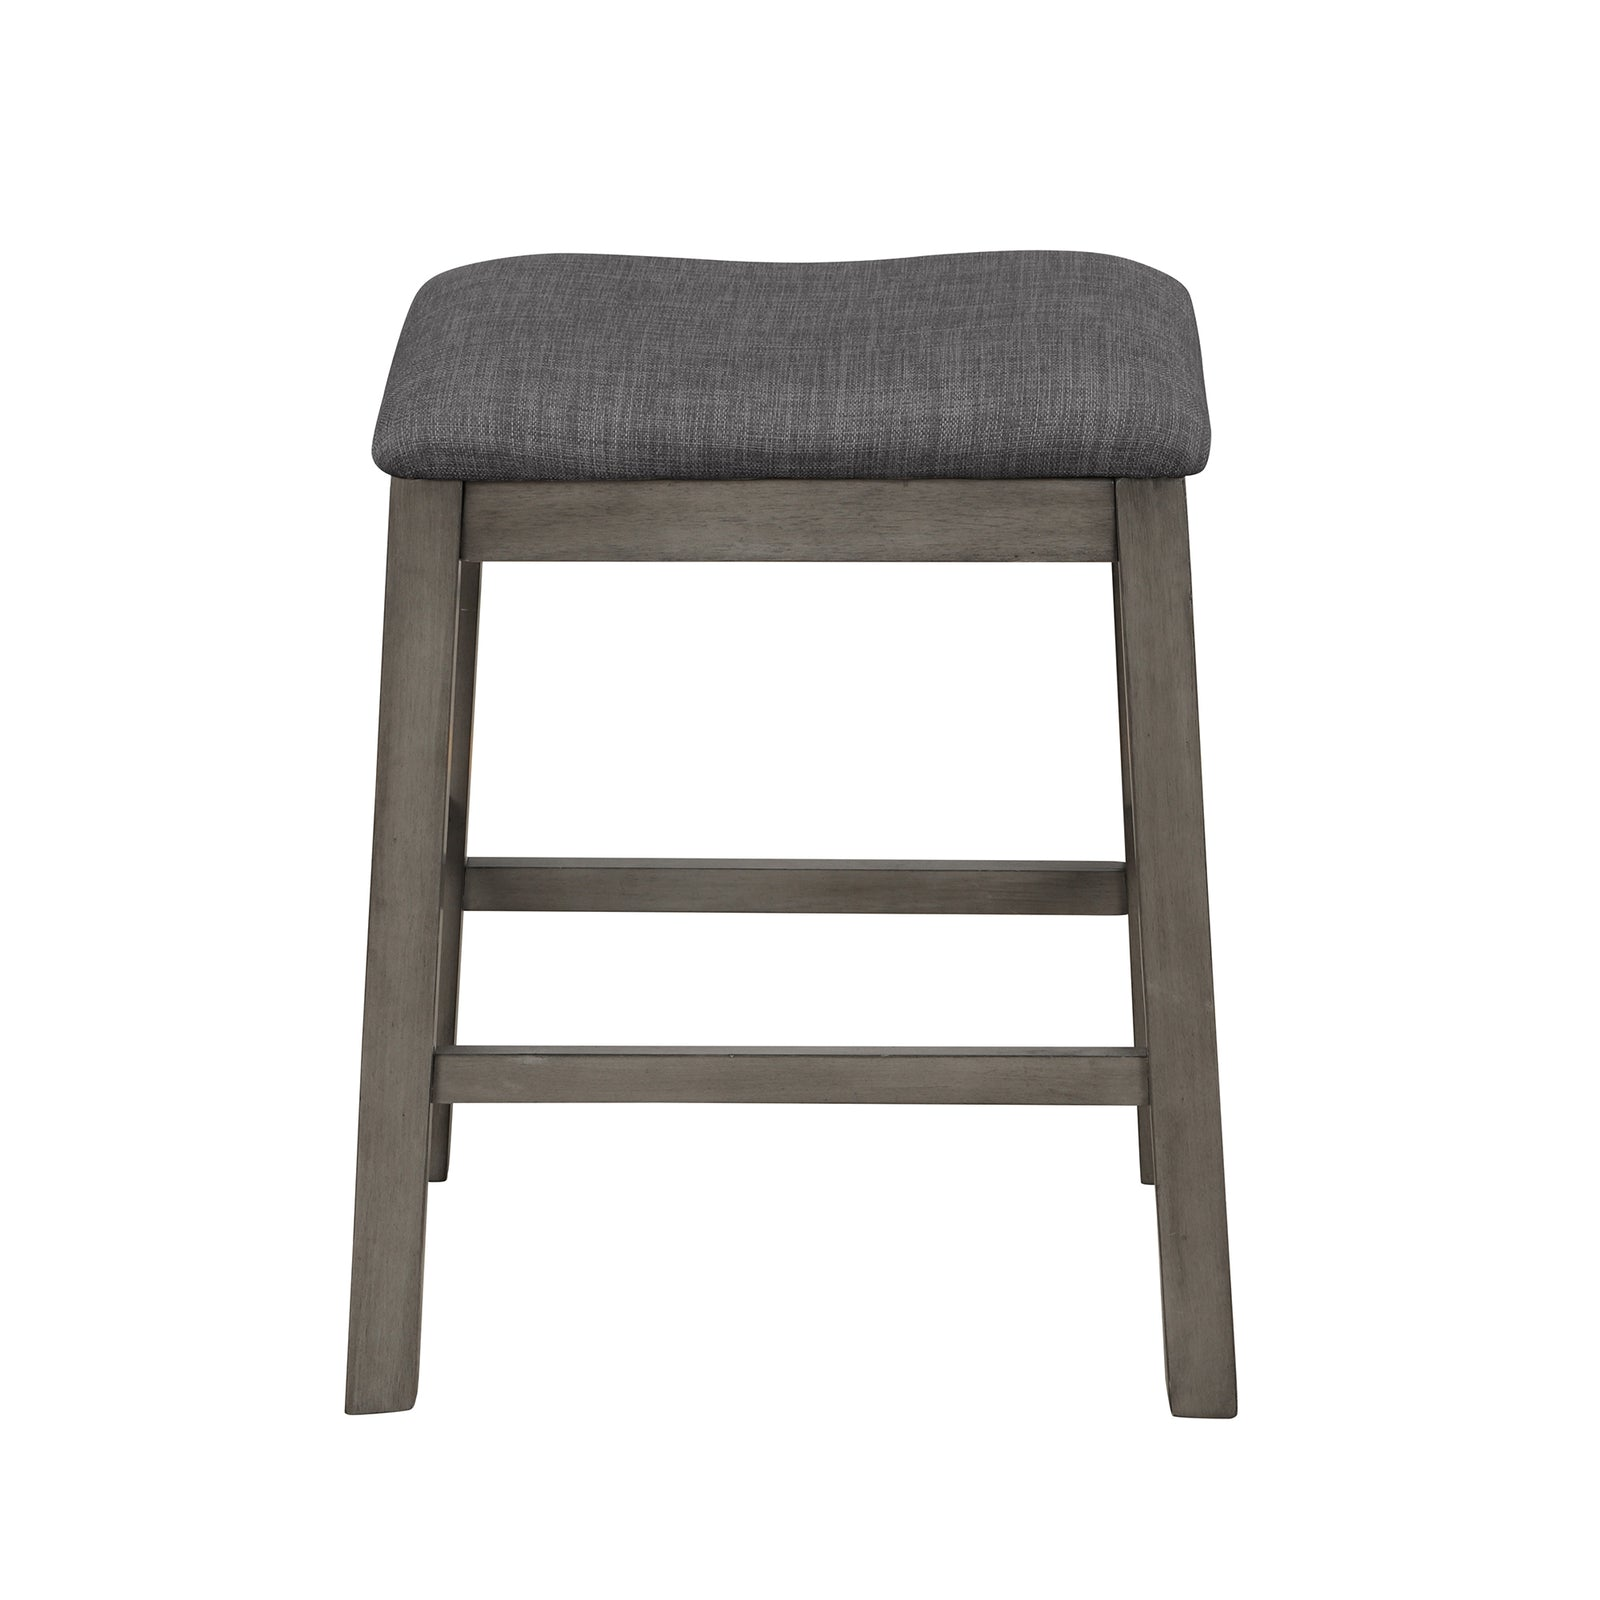 3 Counts - Square Dining Table with Padded Stools, Table Set with Storage Shelf Dark Gray - Stool